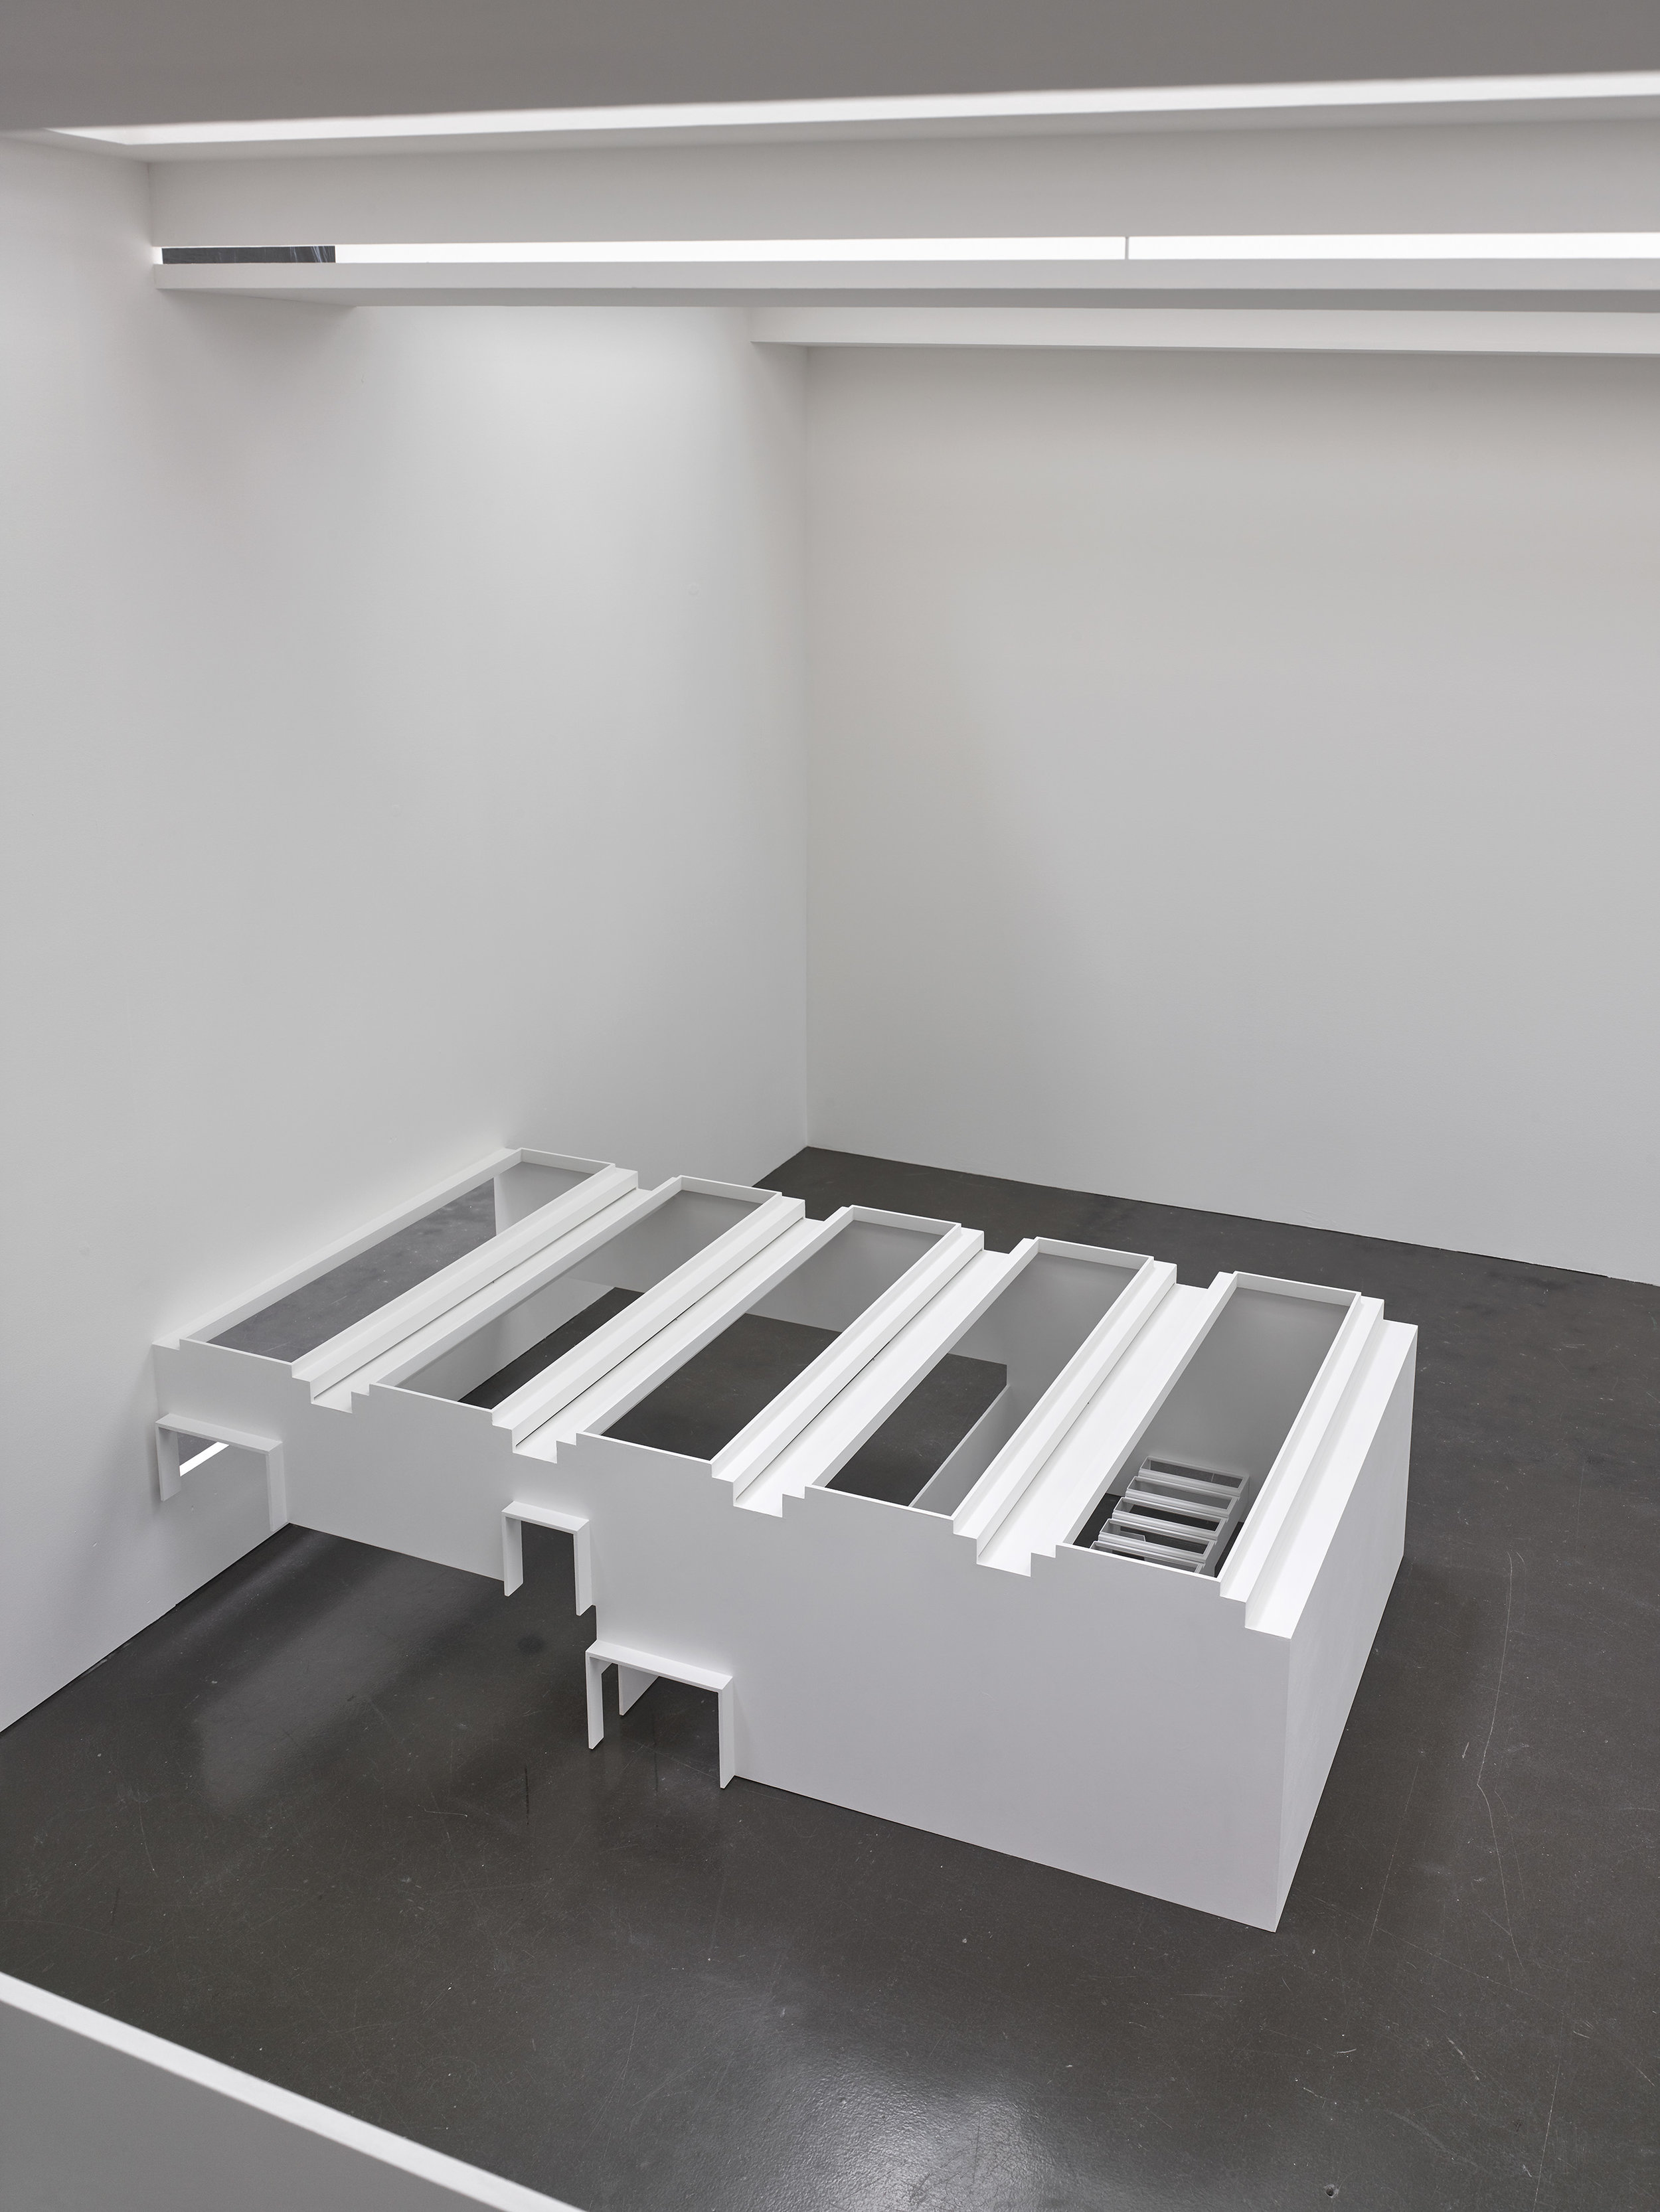 replica, 2019, installation view Kunsthalle Düsseldorf Photo: Achim Kukulies